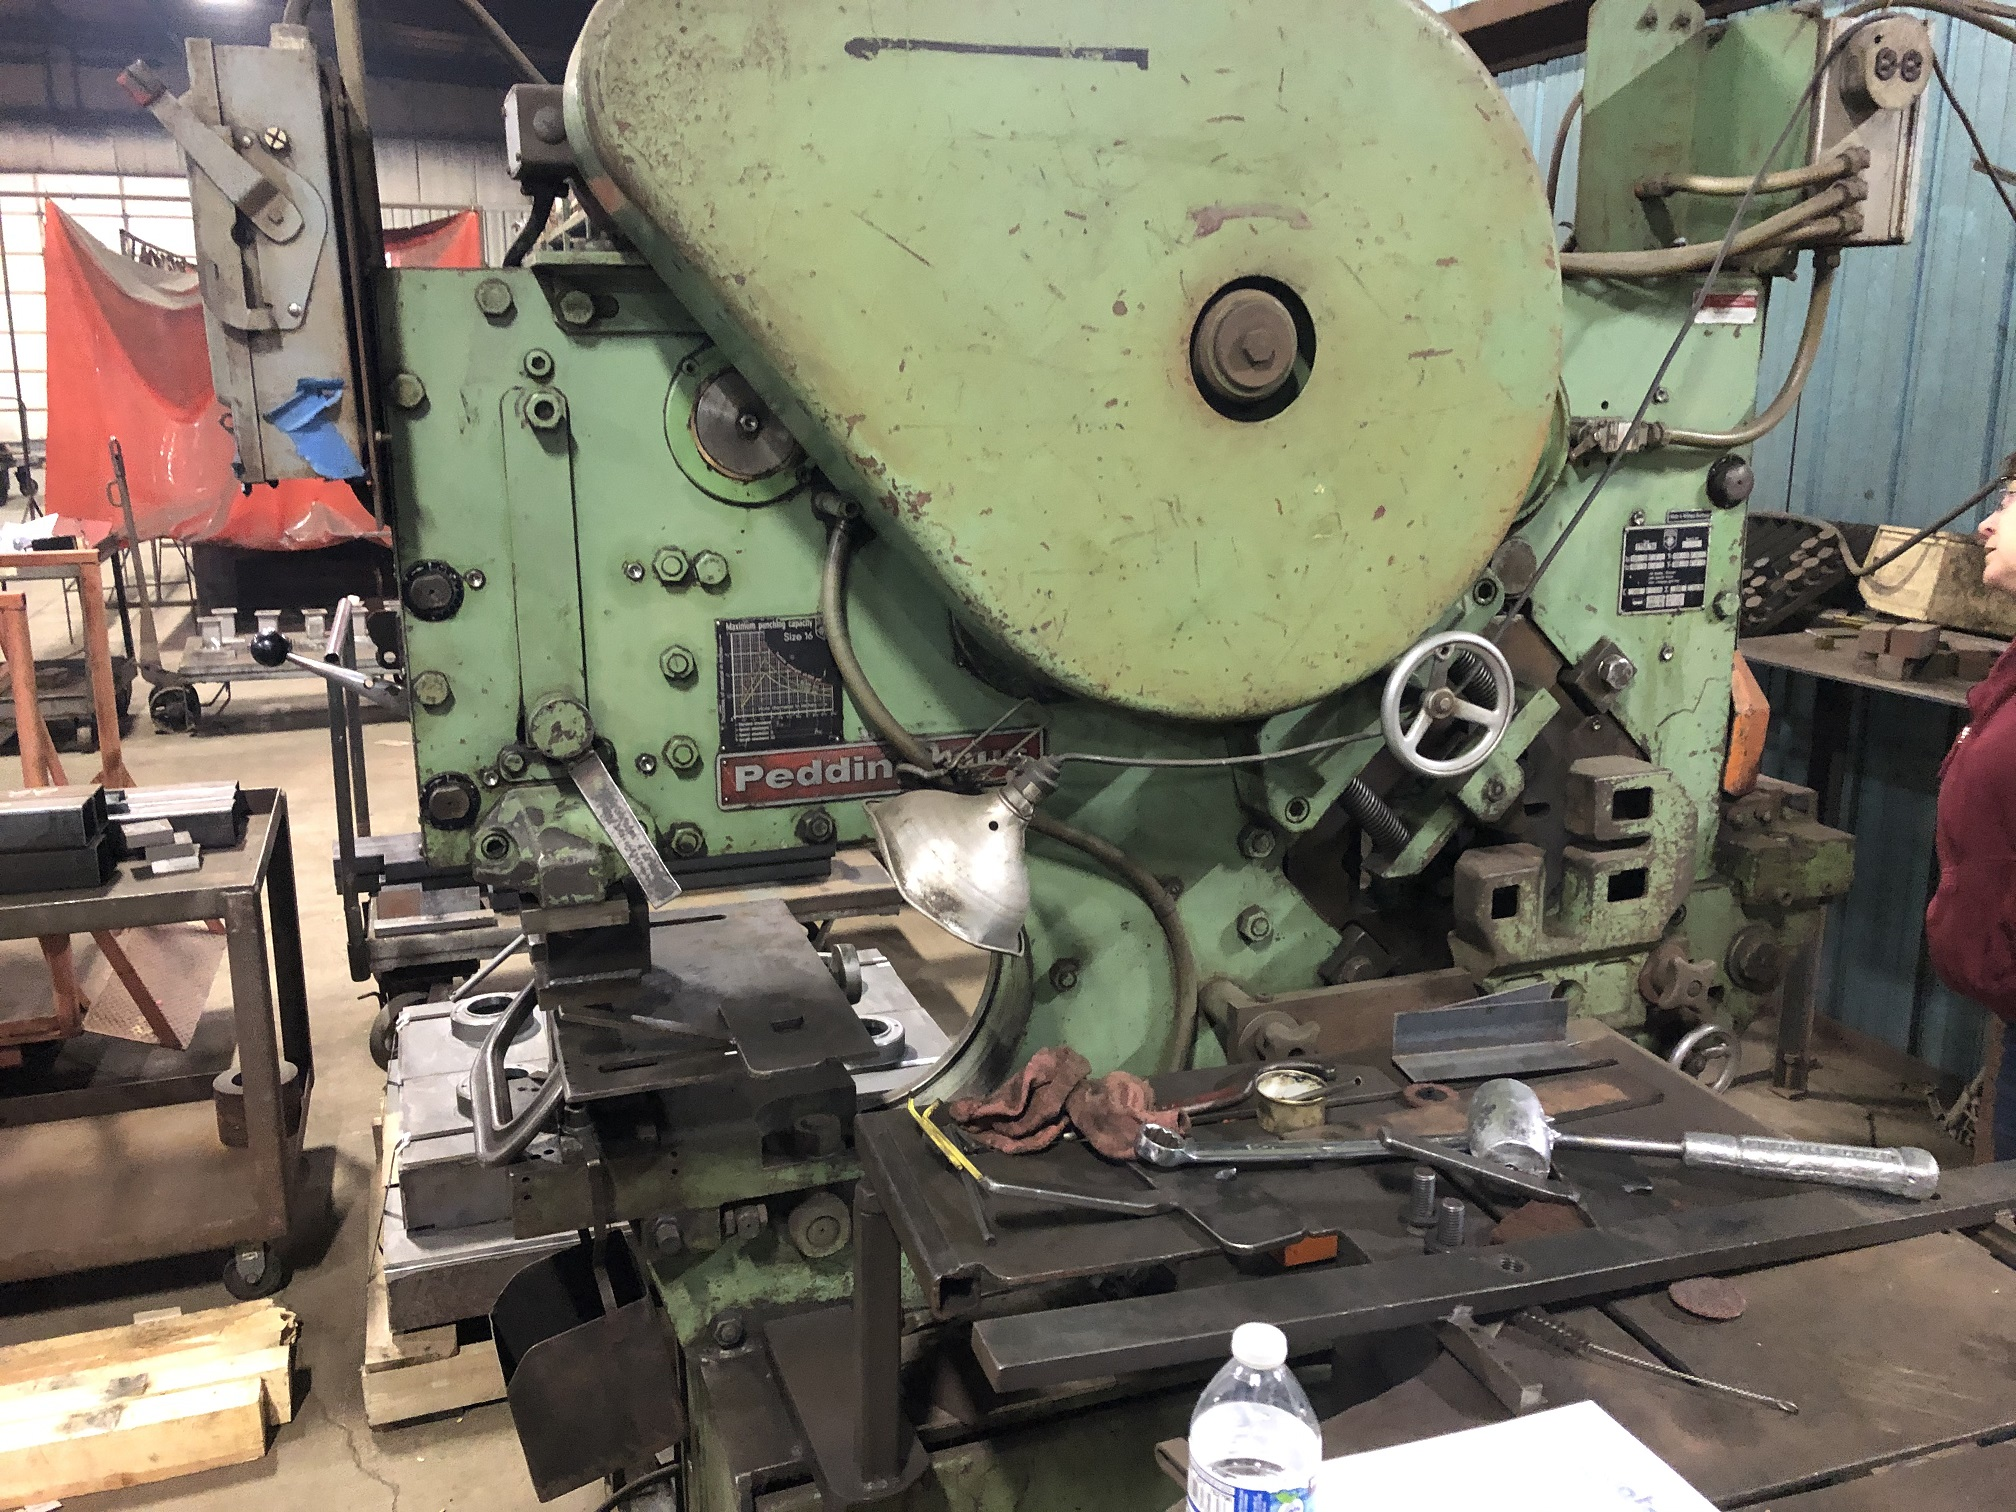 72 TON PEDDINGHAUS, MODEL 210A/16, PUNCH, SHEAR, BAR, ANGLE, COPING, NOTCHING, AND PRESS.